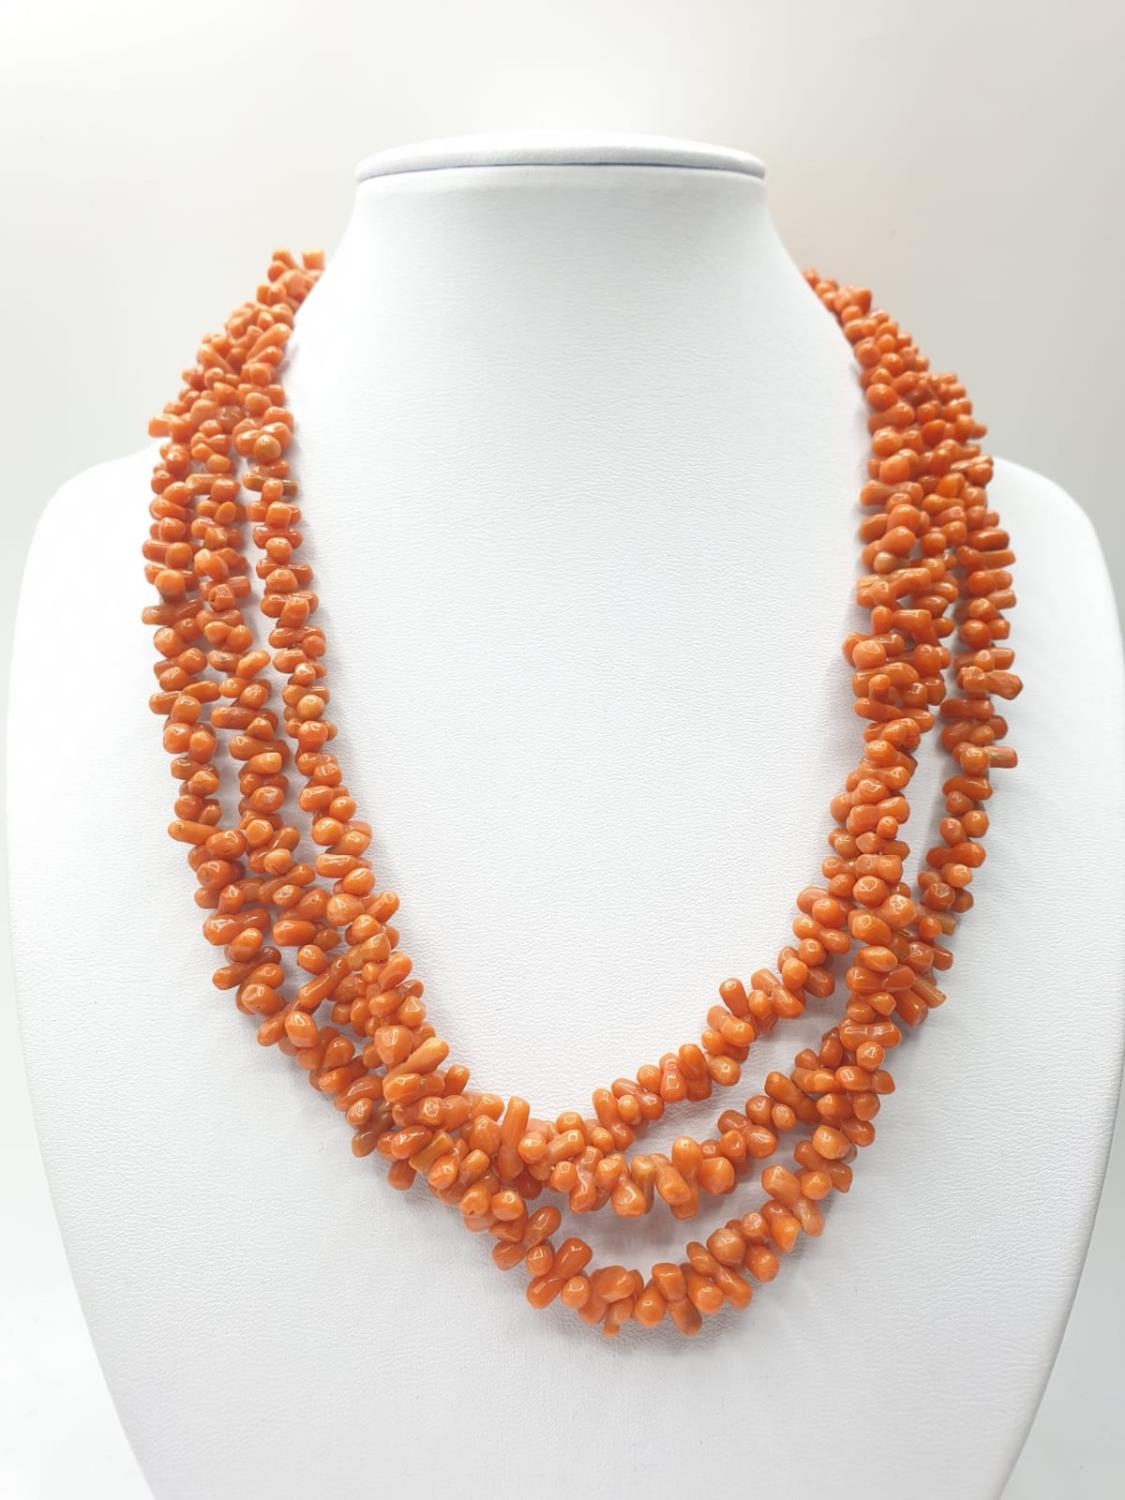 3 ROW CORAL NECKLACE CHOKER STYLE, WEIGHT 71.6G AND 45CM LONG APPROX